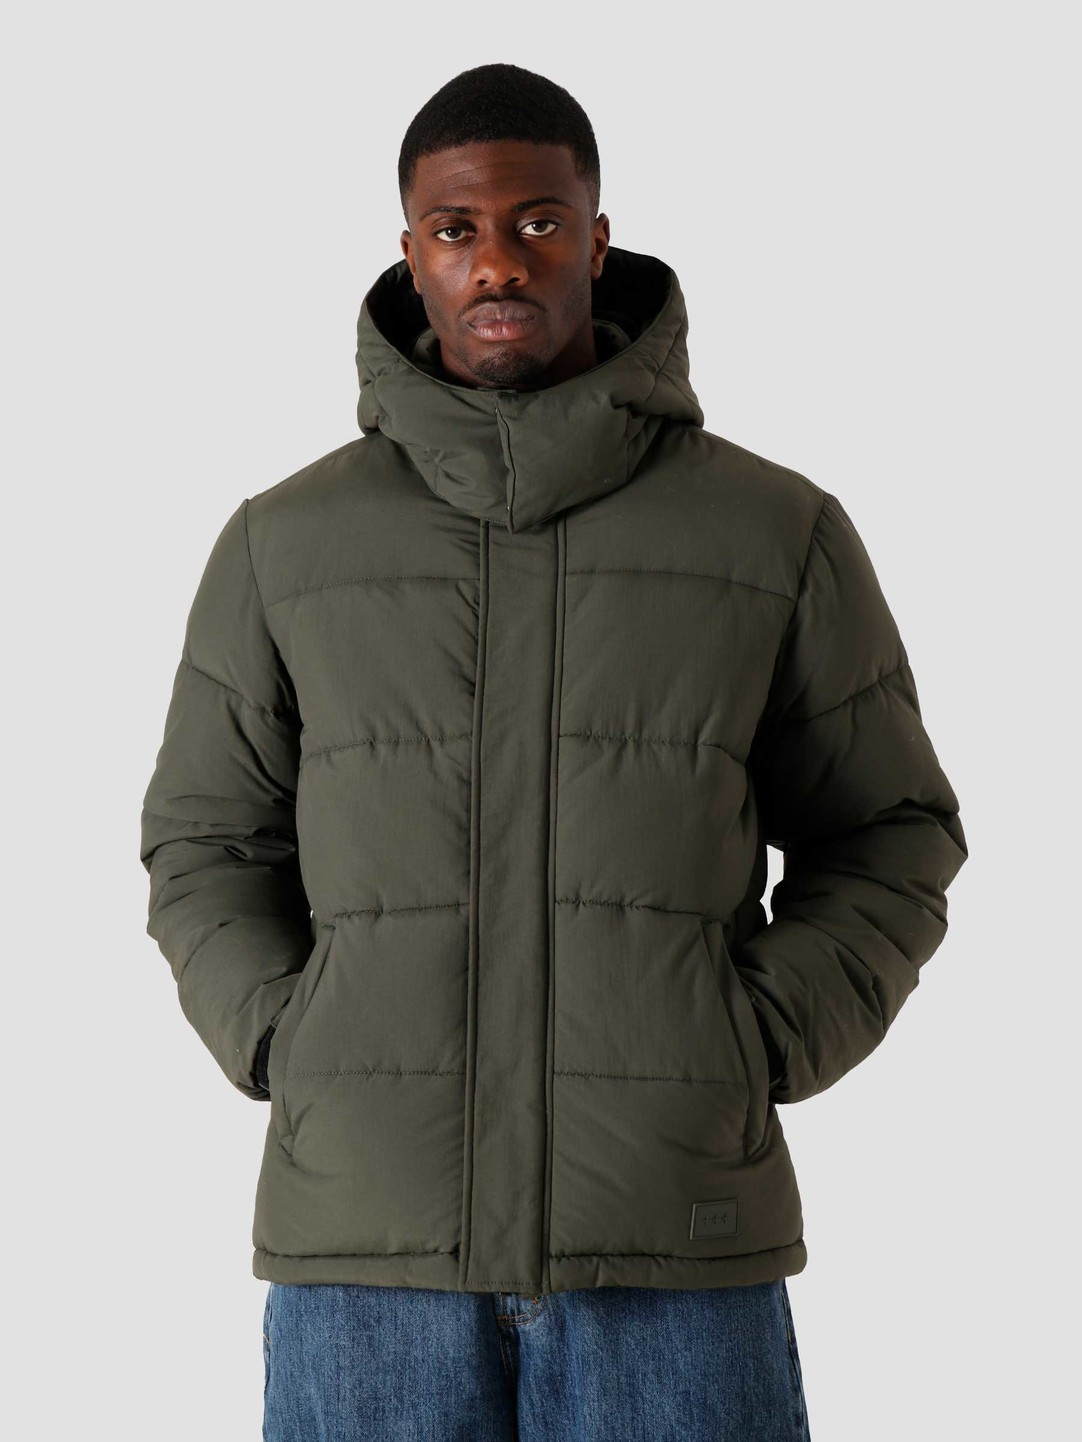 Quality Blanks Quality Blanks QB210 Hooded Puffer Military Green